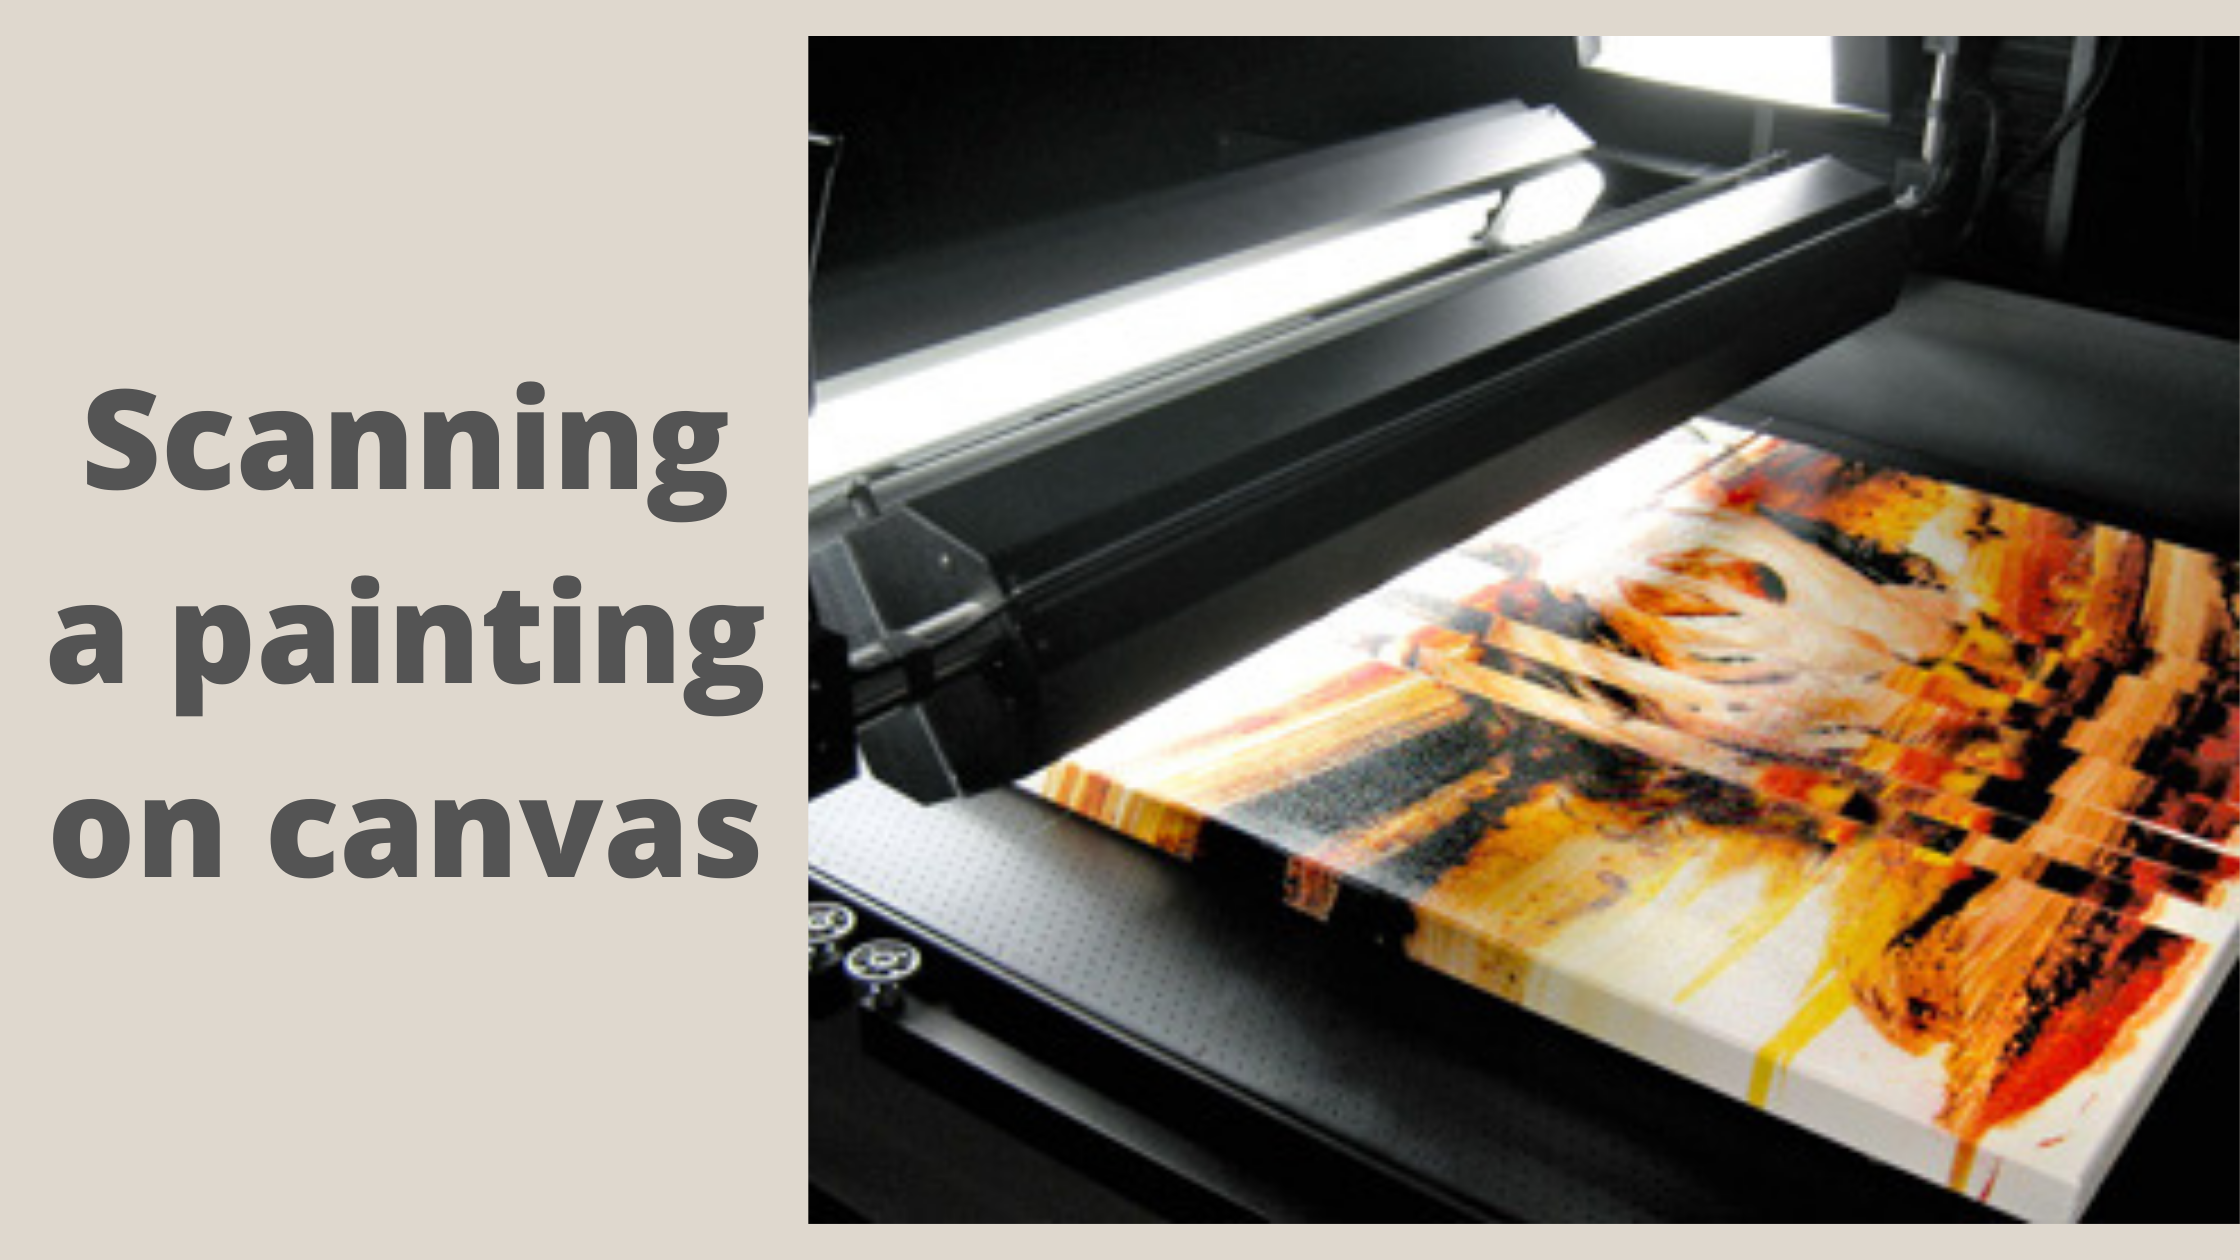 how to scan a painting on canvas